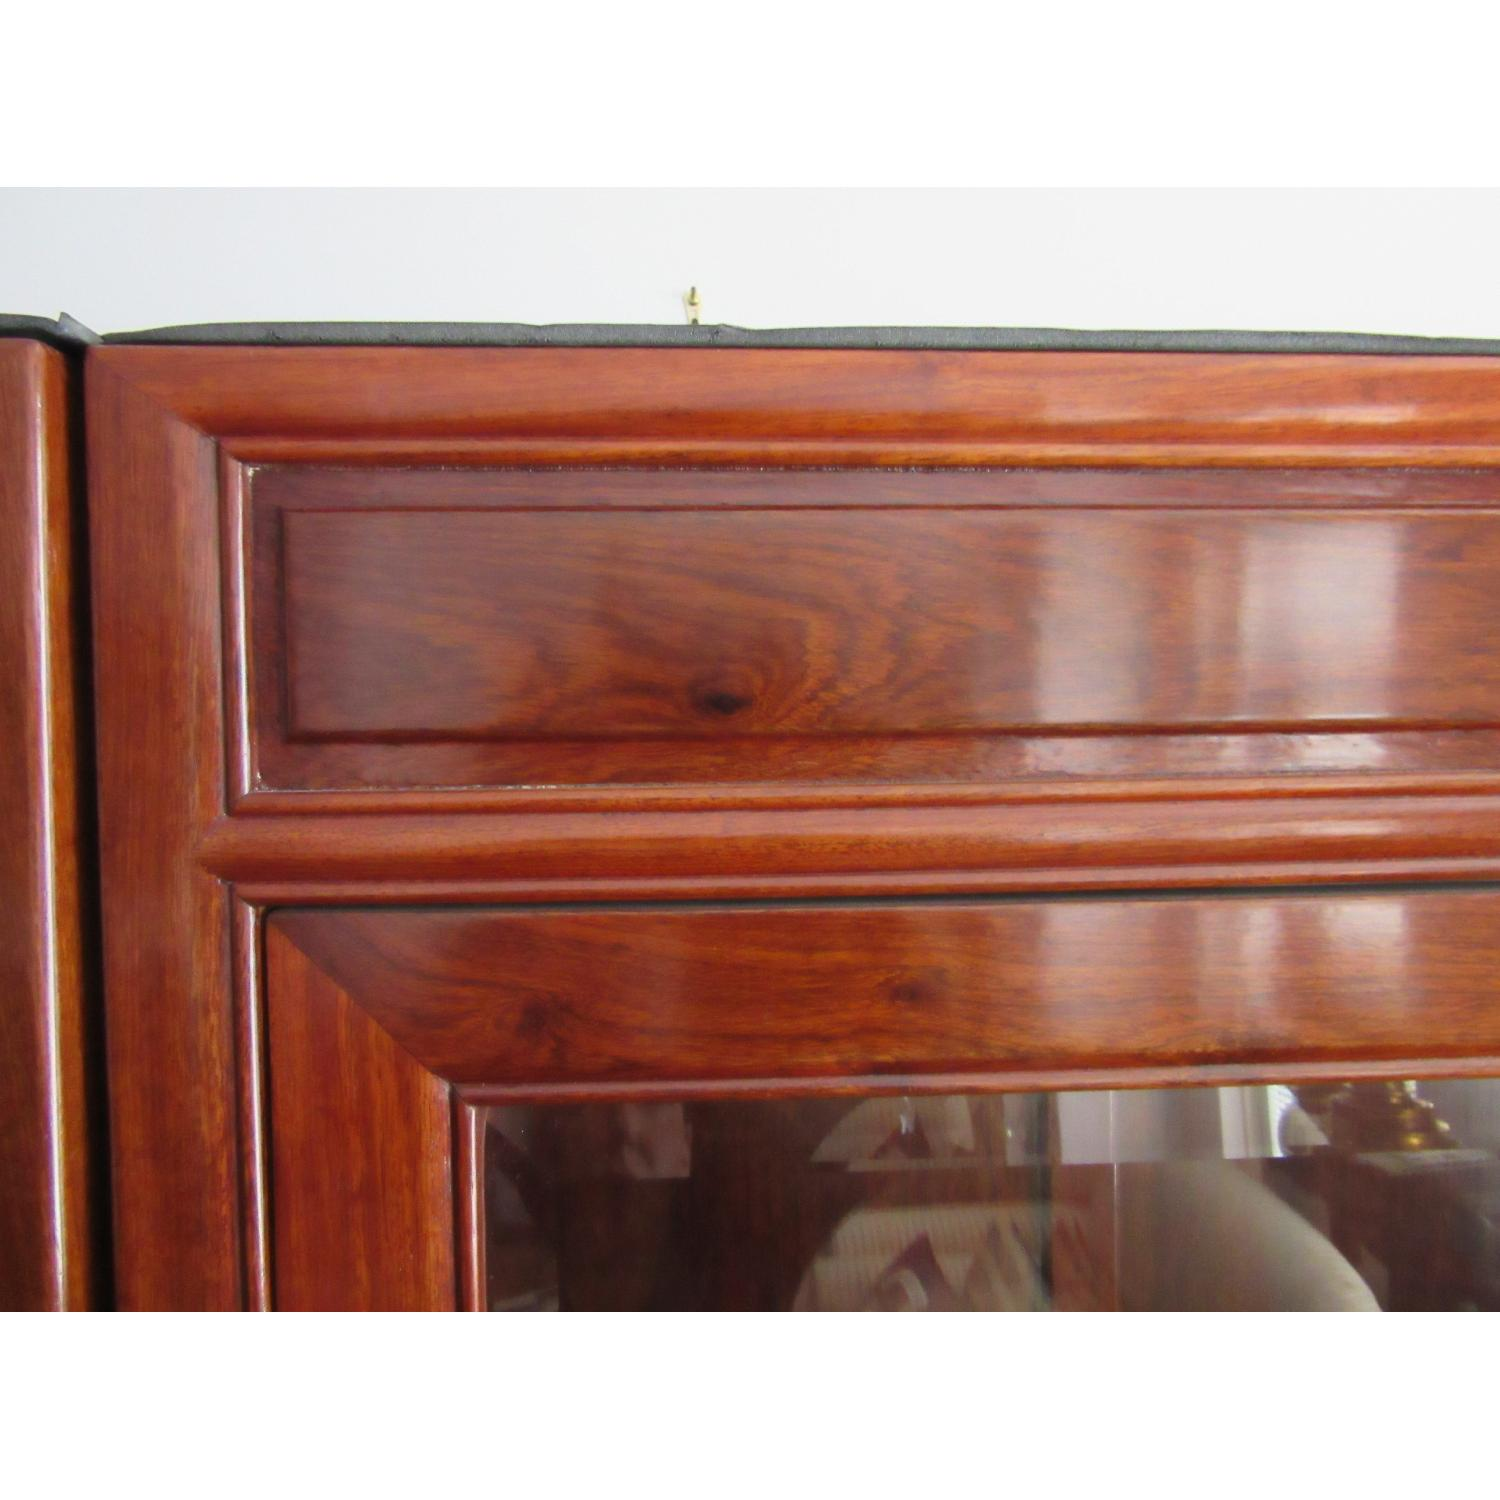 Rosewood Elm Glass Door Cabinets - 2 Available - image-8